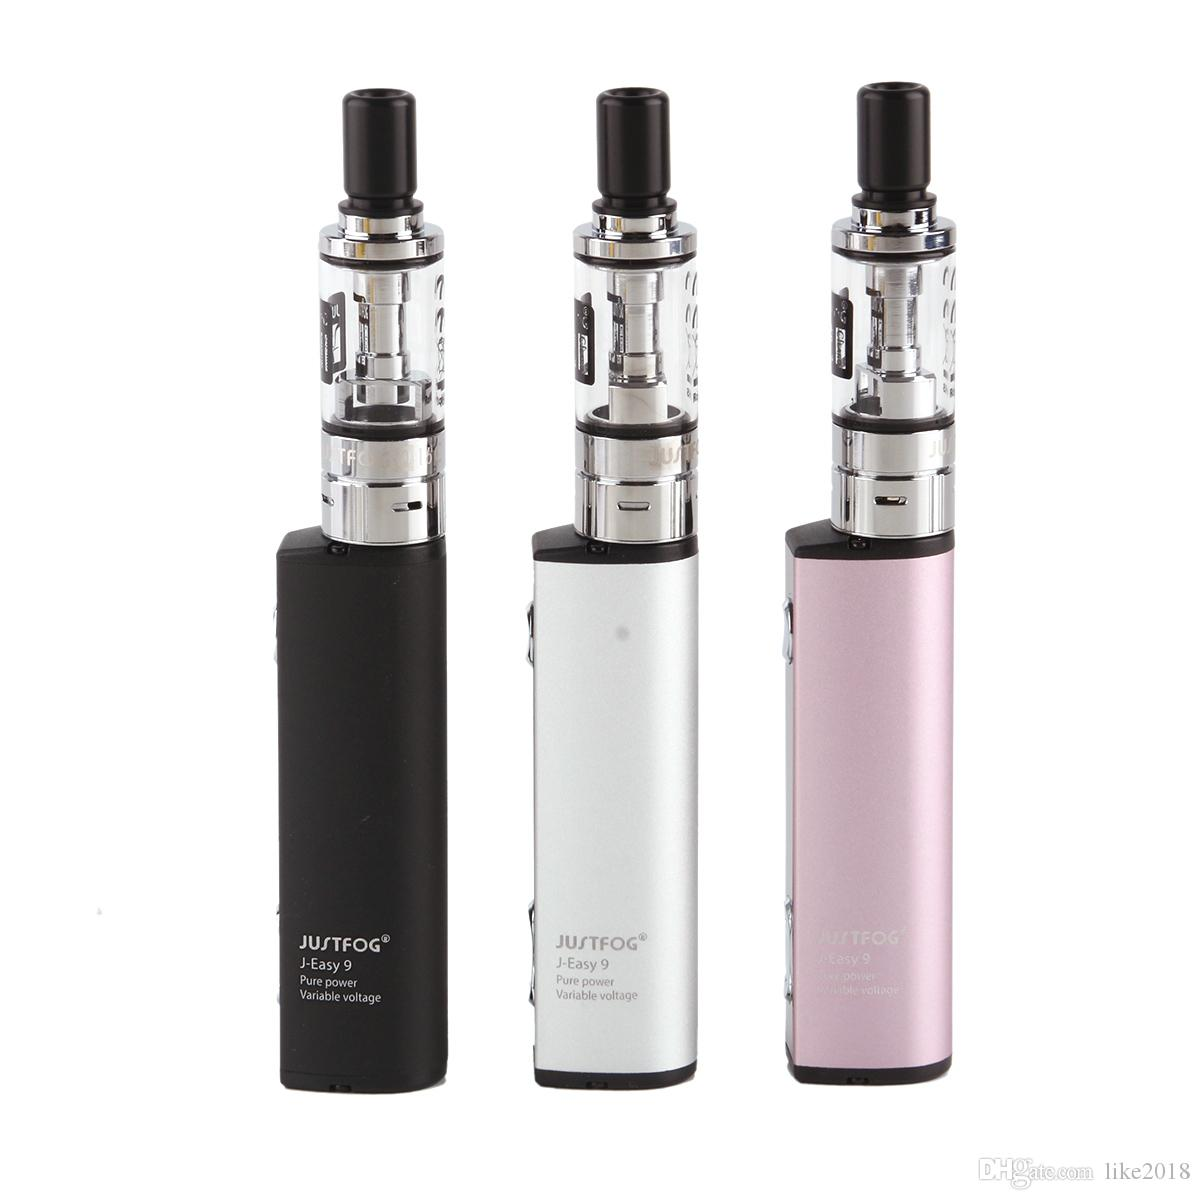 Authentique Kit de démarrage Justfog Q16 / Q16C mis à niveau Q16 900mAh Tension variable J-Easy 9 Batterie 1.9ml Clearomizer à l'épreuve des enfants